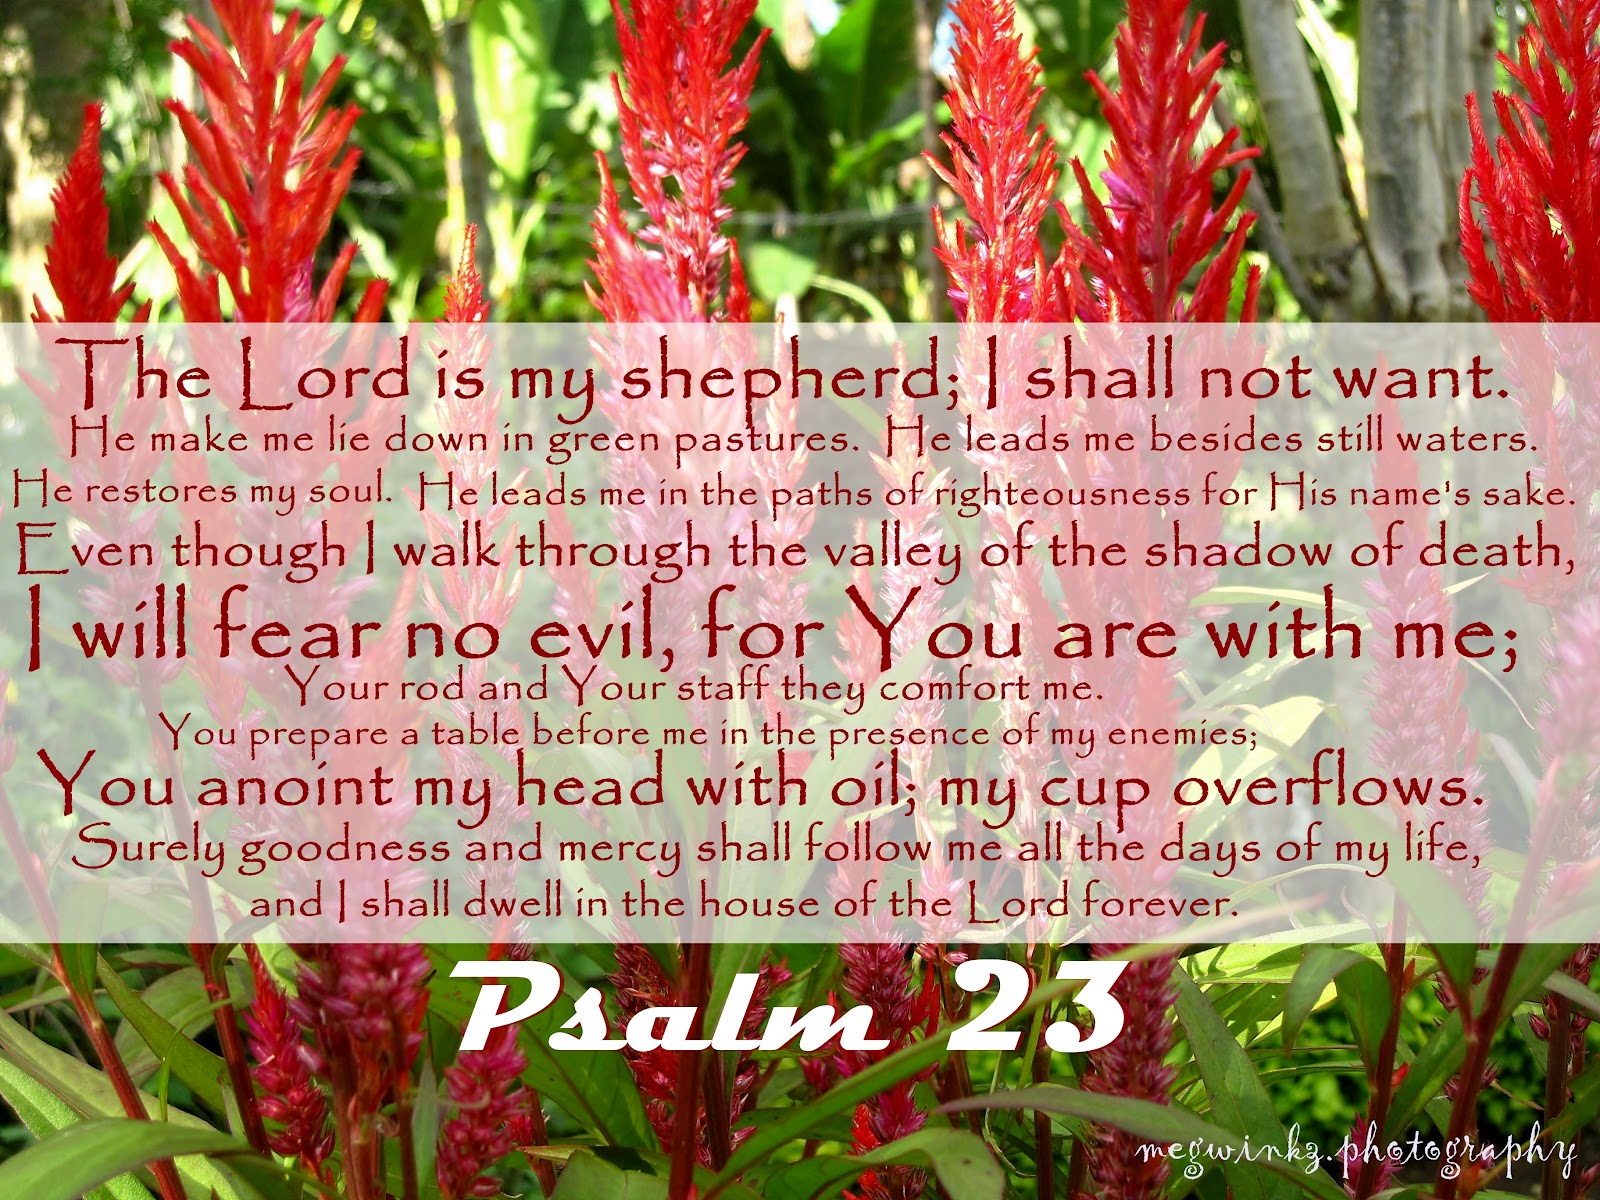 images of psalm 23 wallpaper psalm 23 fuckyoubitchbitch x1homevideo 1600x1200